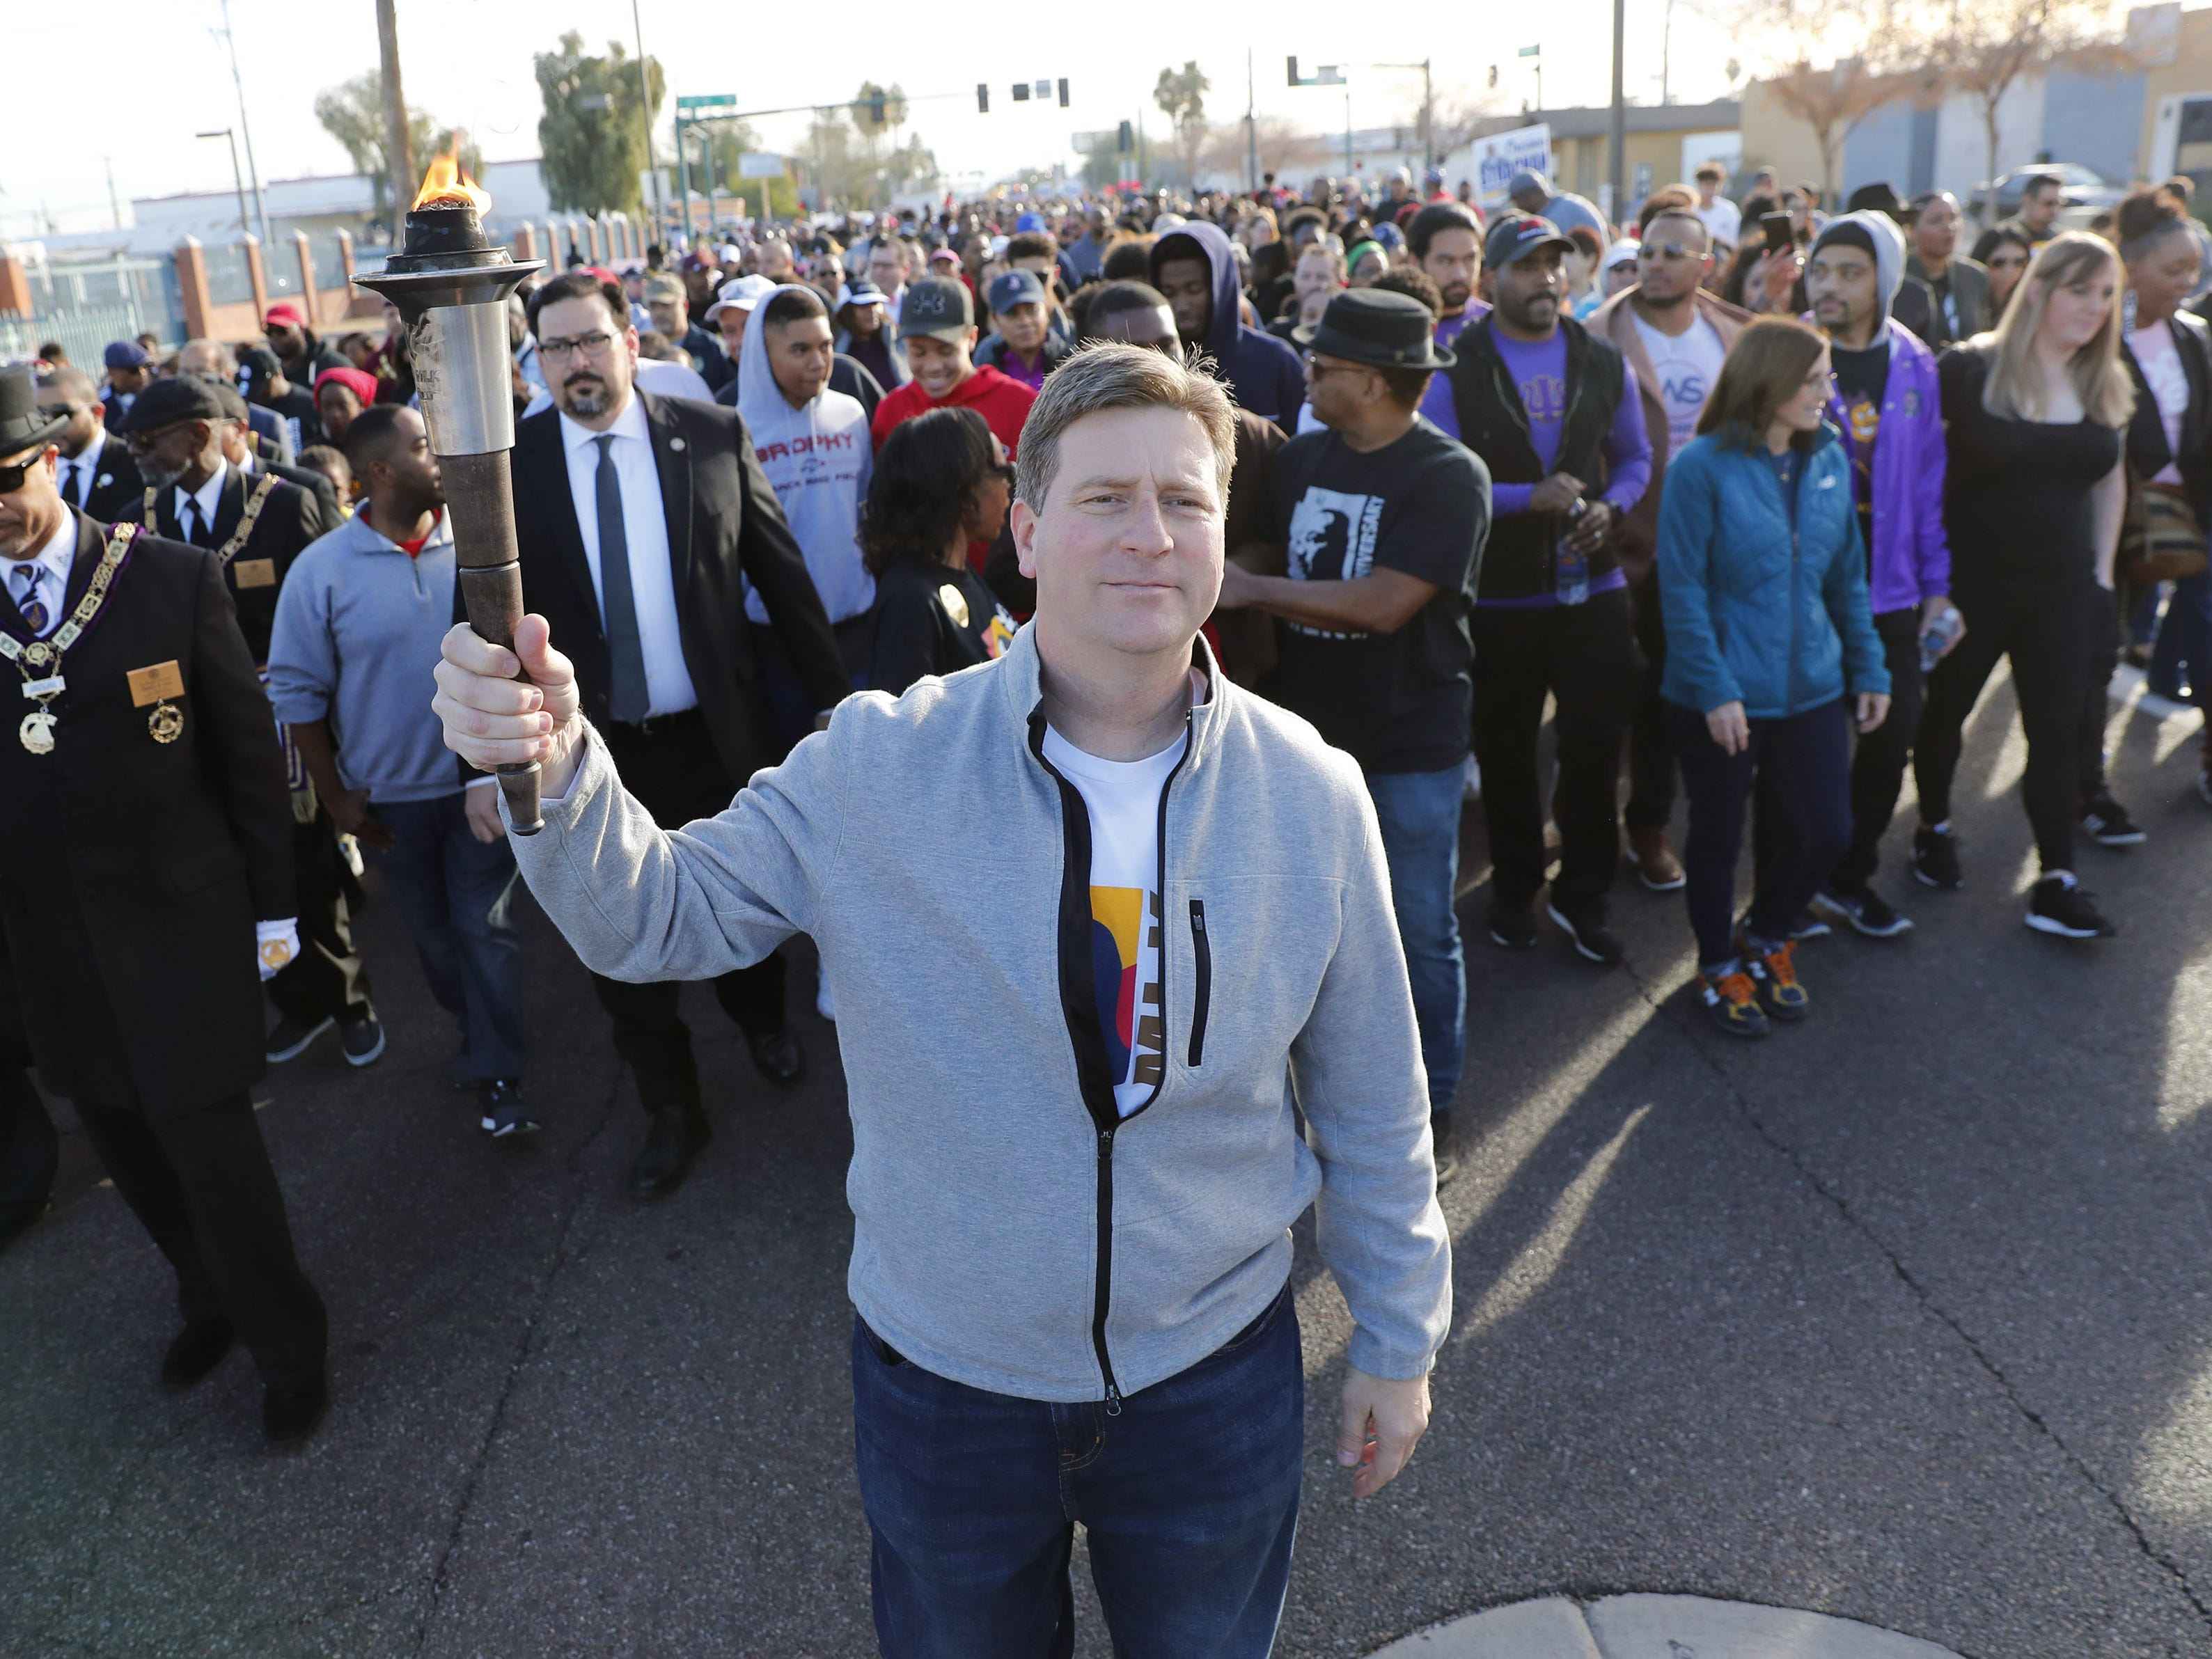 U.S. Rep. Greg Stanton (D-Ariz) leads a march honoring Dr. Martin Luther King in downtown Phoenix, Ariz. January 21, 2019. The march is symbolic of Dr. King's revolutionary 1968 march.